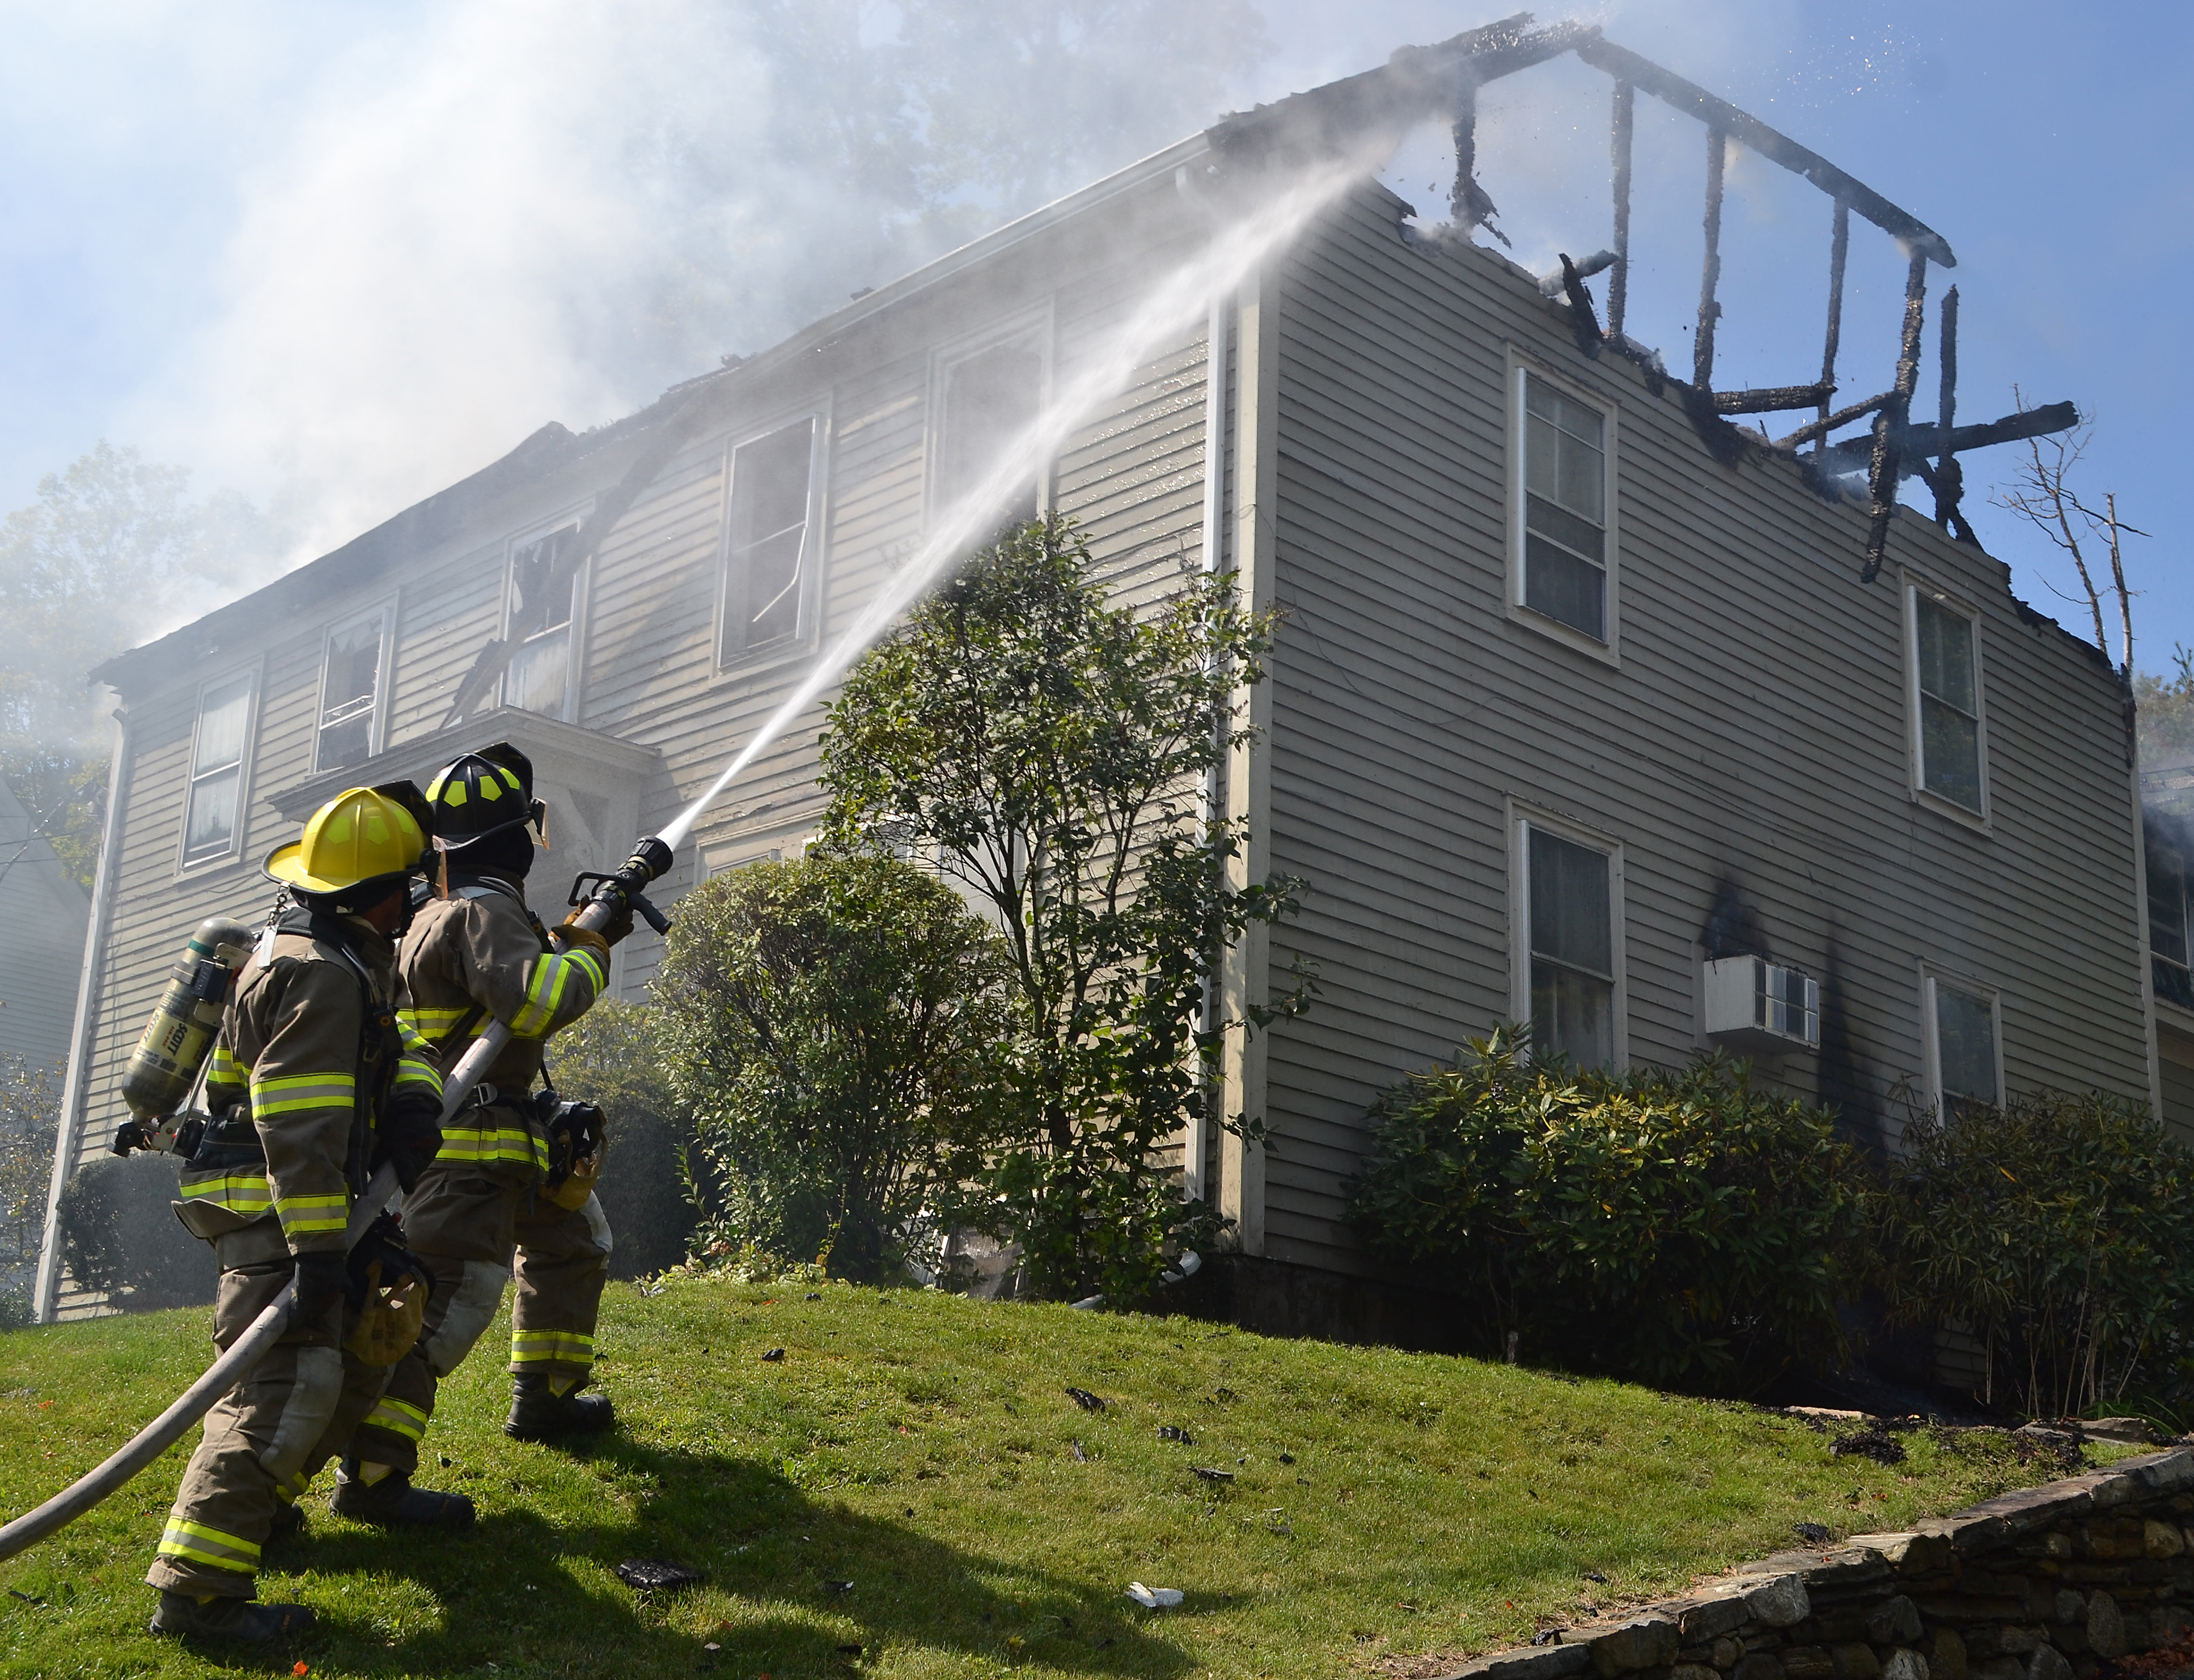 Firefighters douse hot spots in the remains of the roof at 50 Main St. in Newcastle. (Maia Zewert photo)